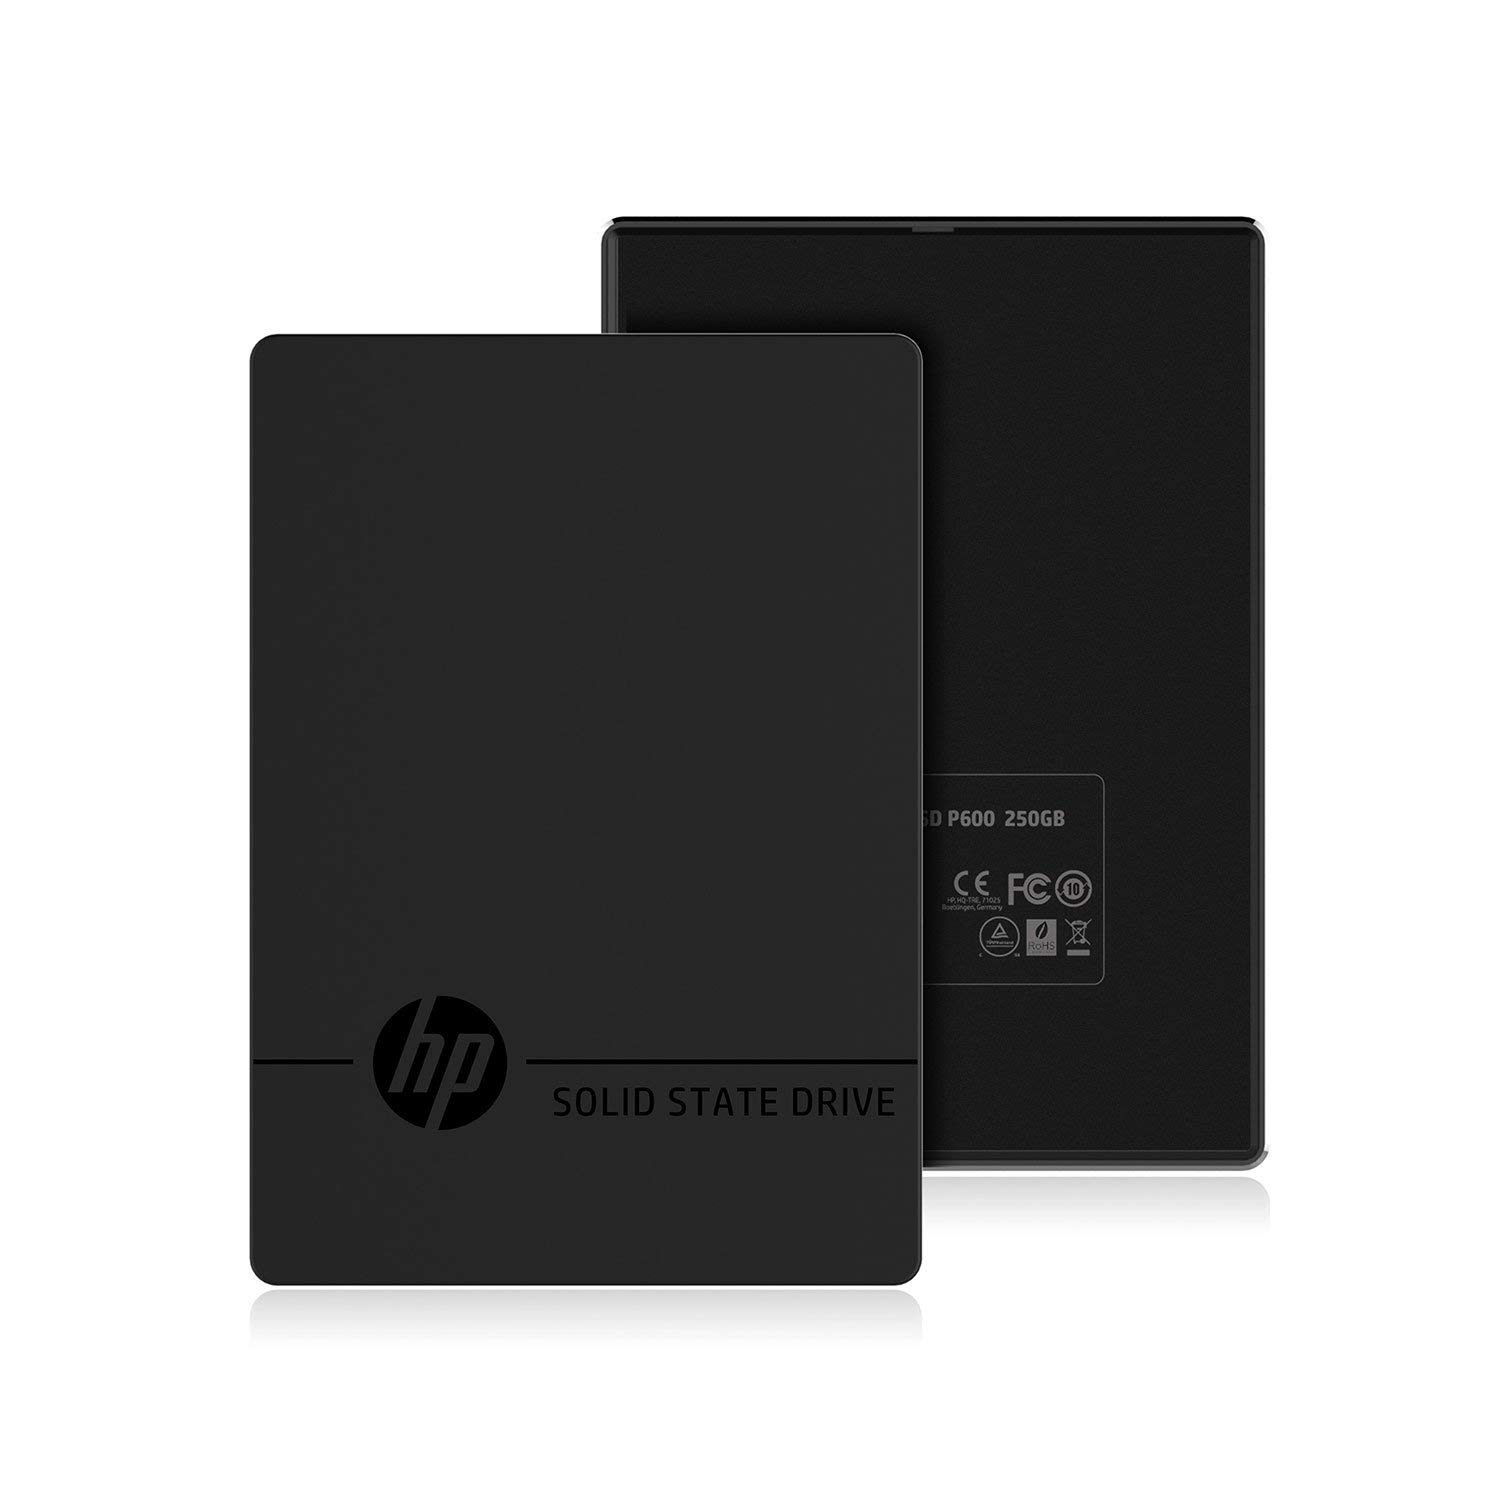 HP P600 250GB Portable USB 3.1 External SSD 3XJ06AA#ABC by HP